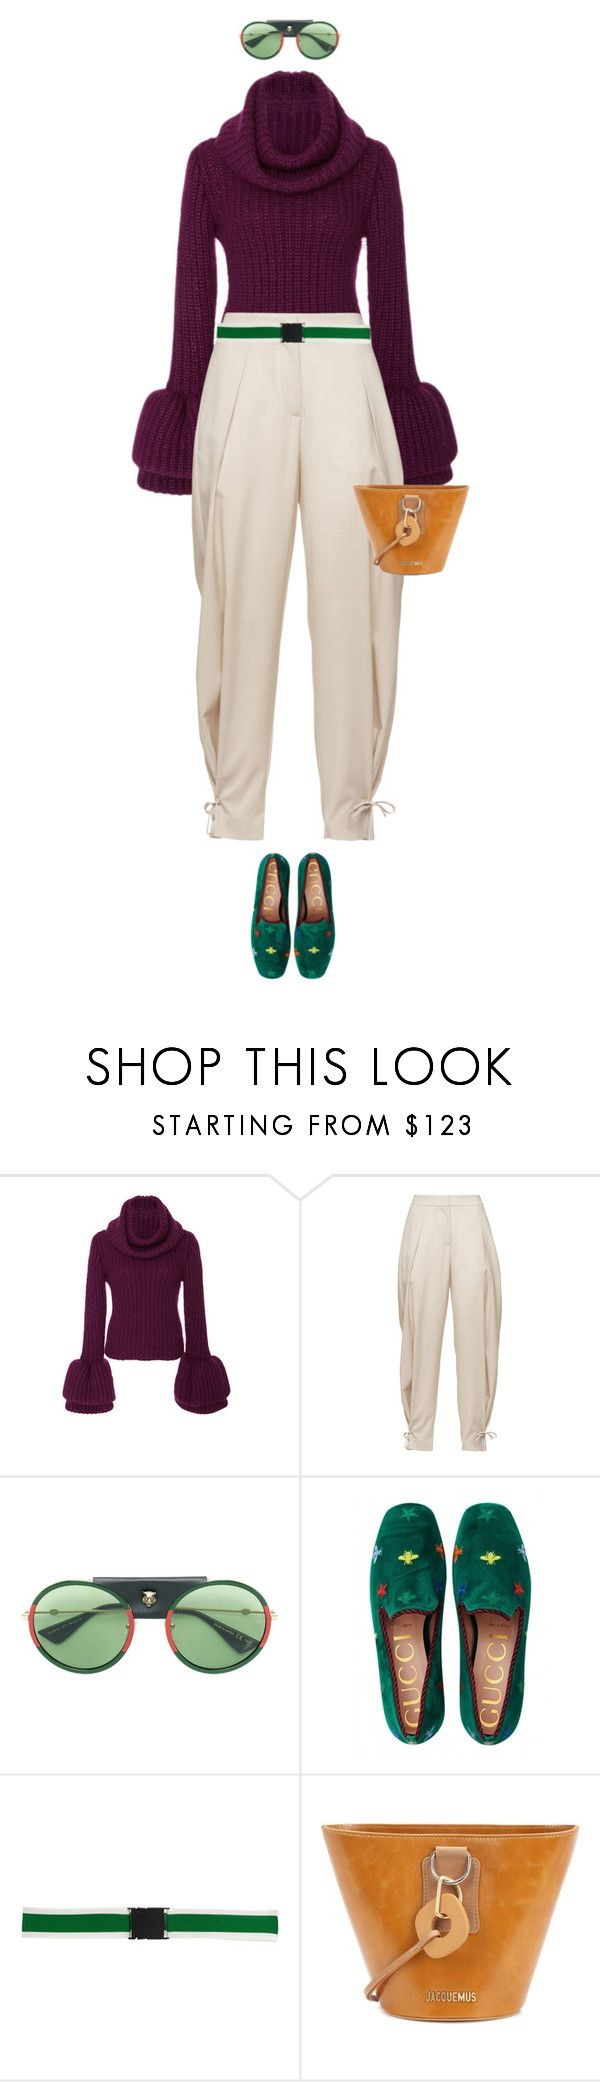 """eva2148"" by evava-c on Polyvore featuring Tuinch, FABIANA FILIPPI, Gucci, N°21 and Jacquemus"